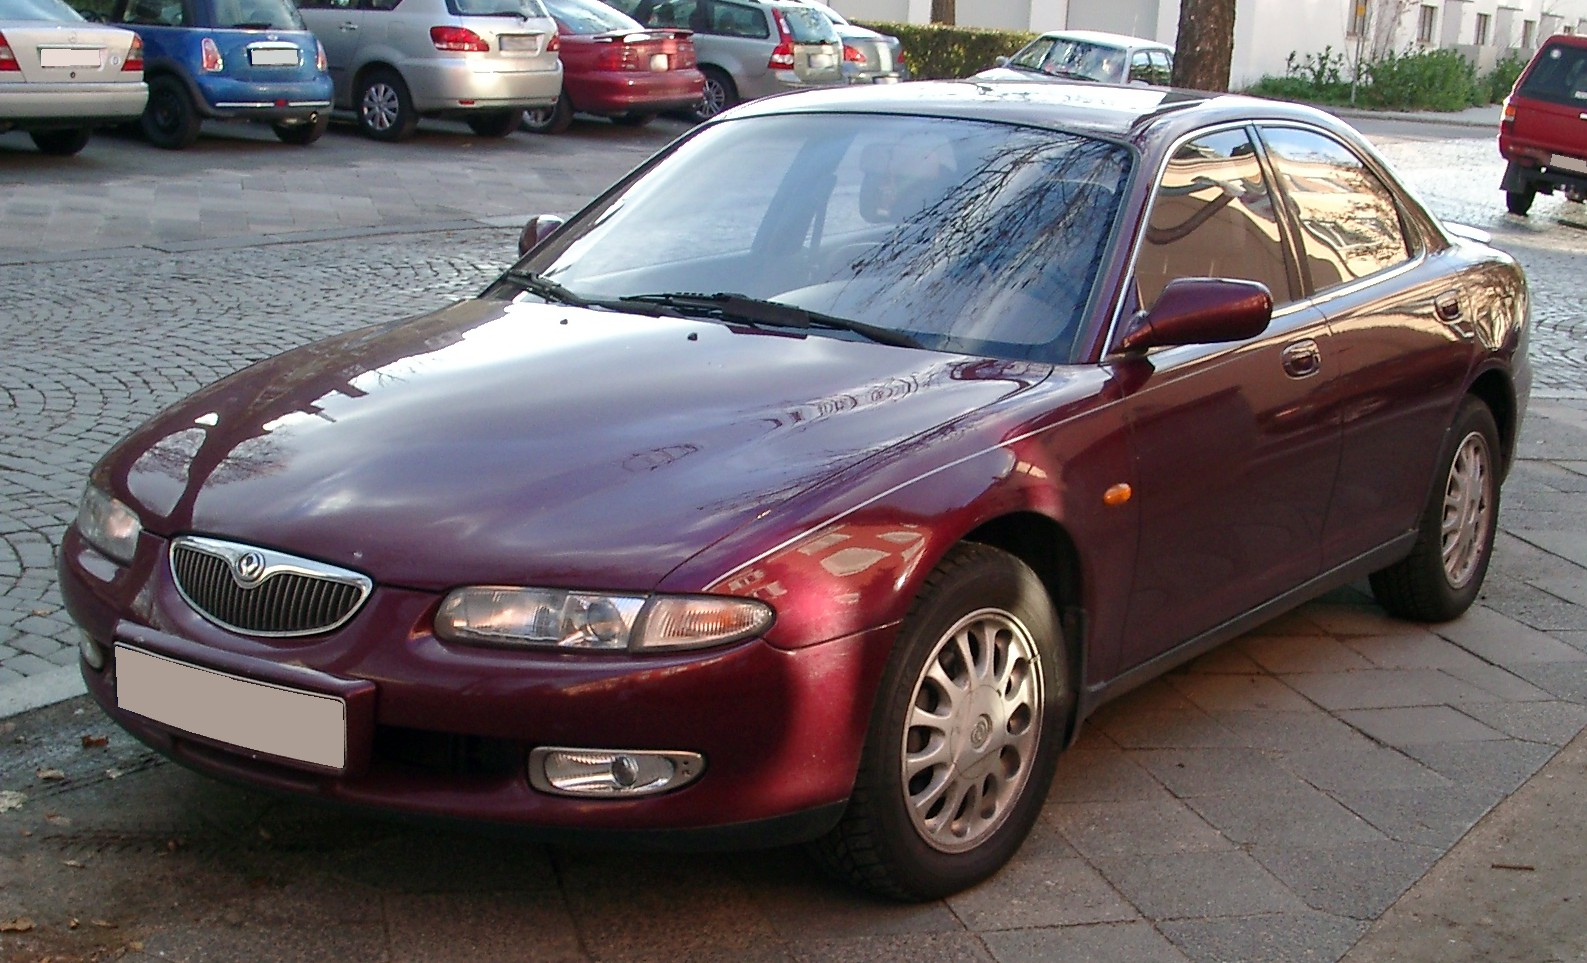 1992 Mazda Clef (ge)   pictures, information and specs - Auto